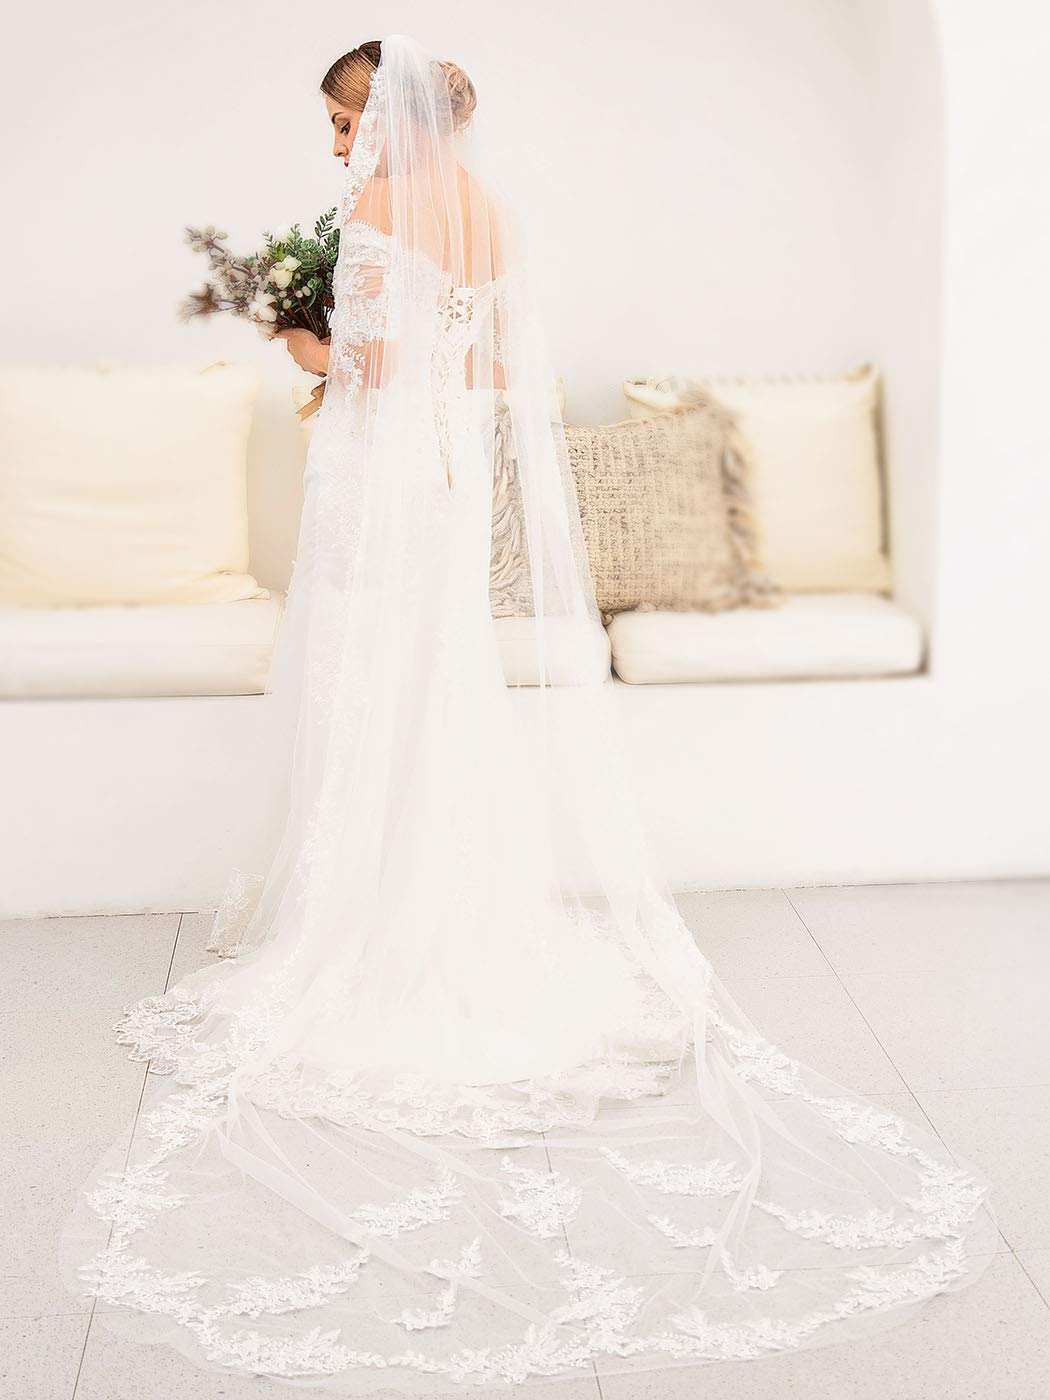 Barogirl Wedding Veil Lace White Bridal Cathedral Veil 1 Tier Embroidery Drop Veil Long for Brides, 118 Inches (White)